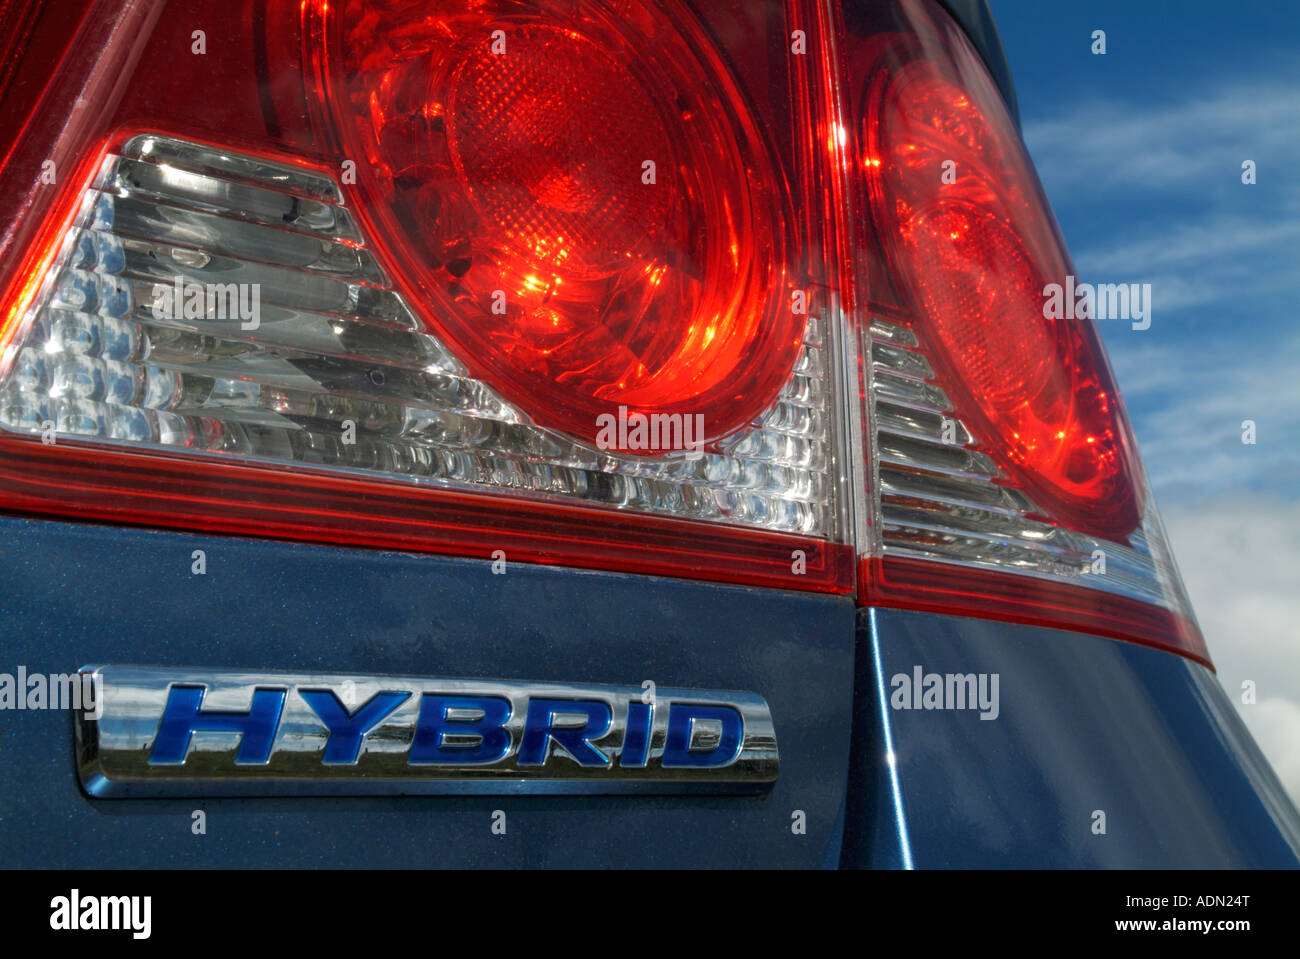 The rear tail light and badge of the Honda Civic Hybrid car - Stock Image